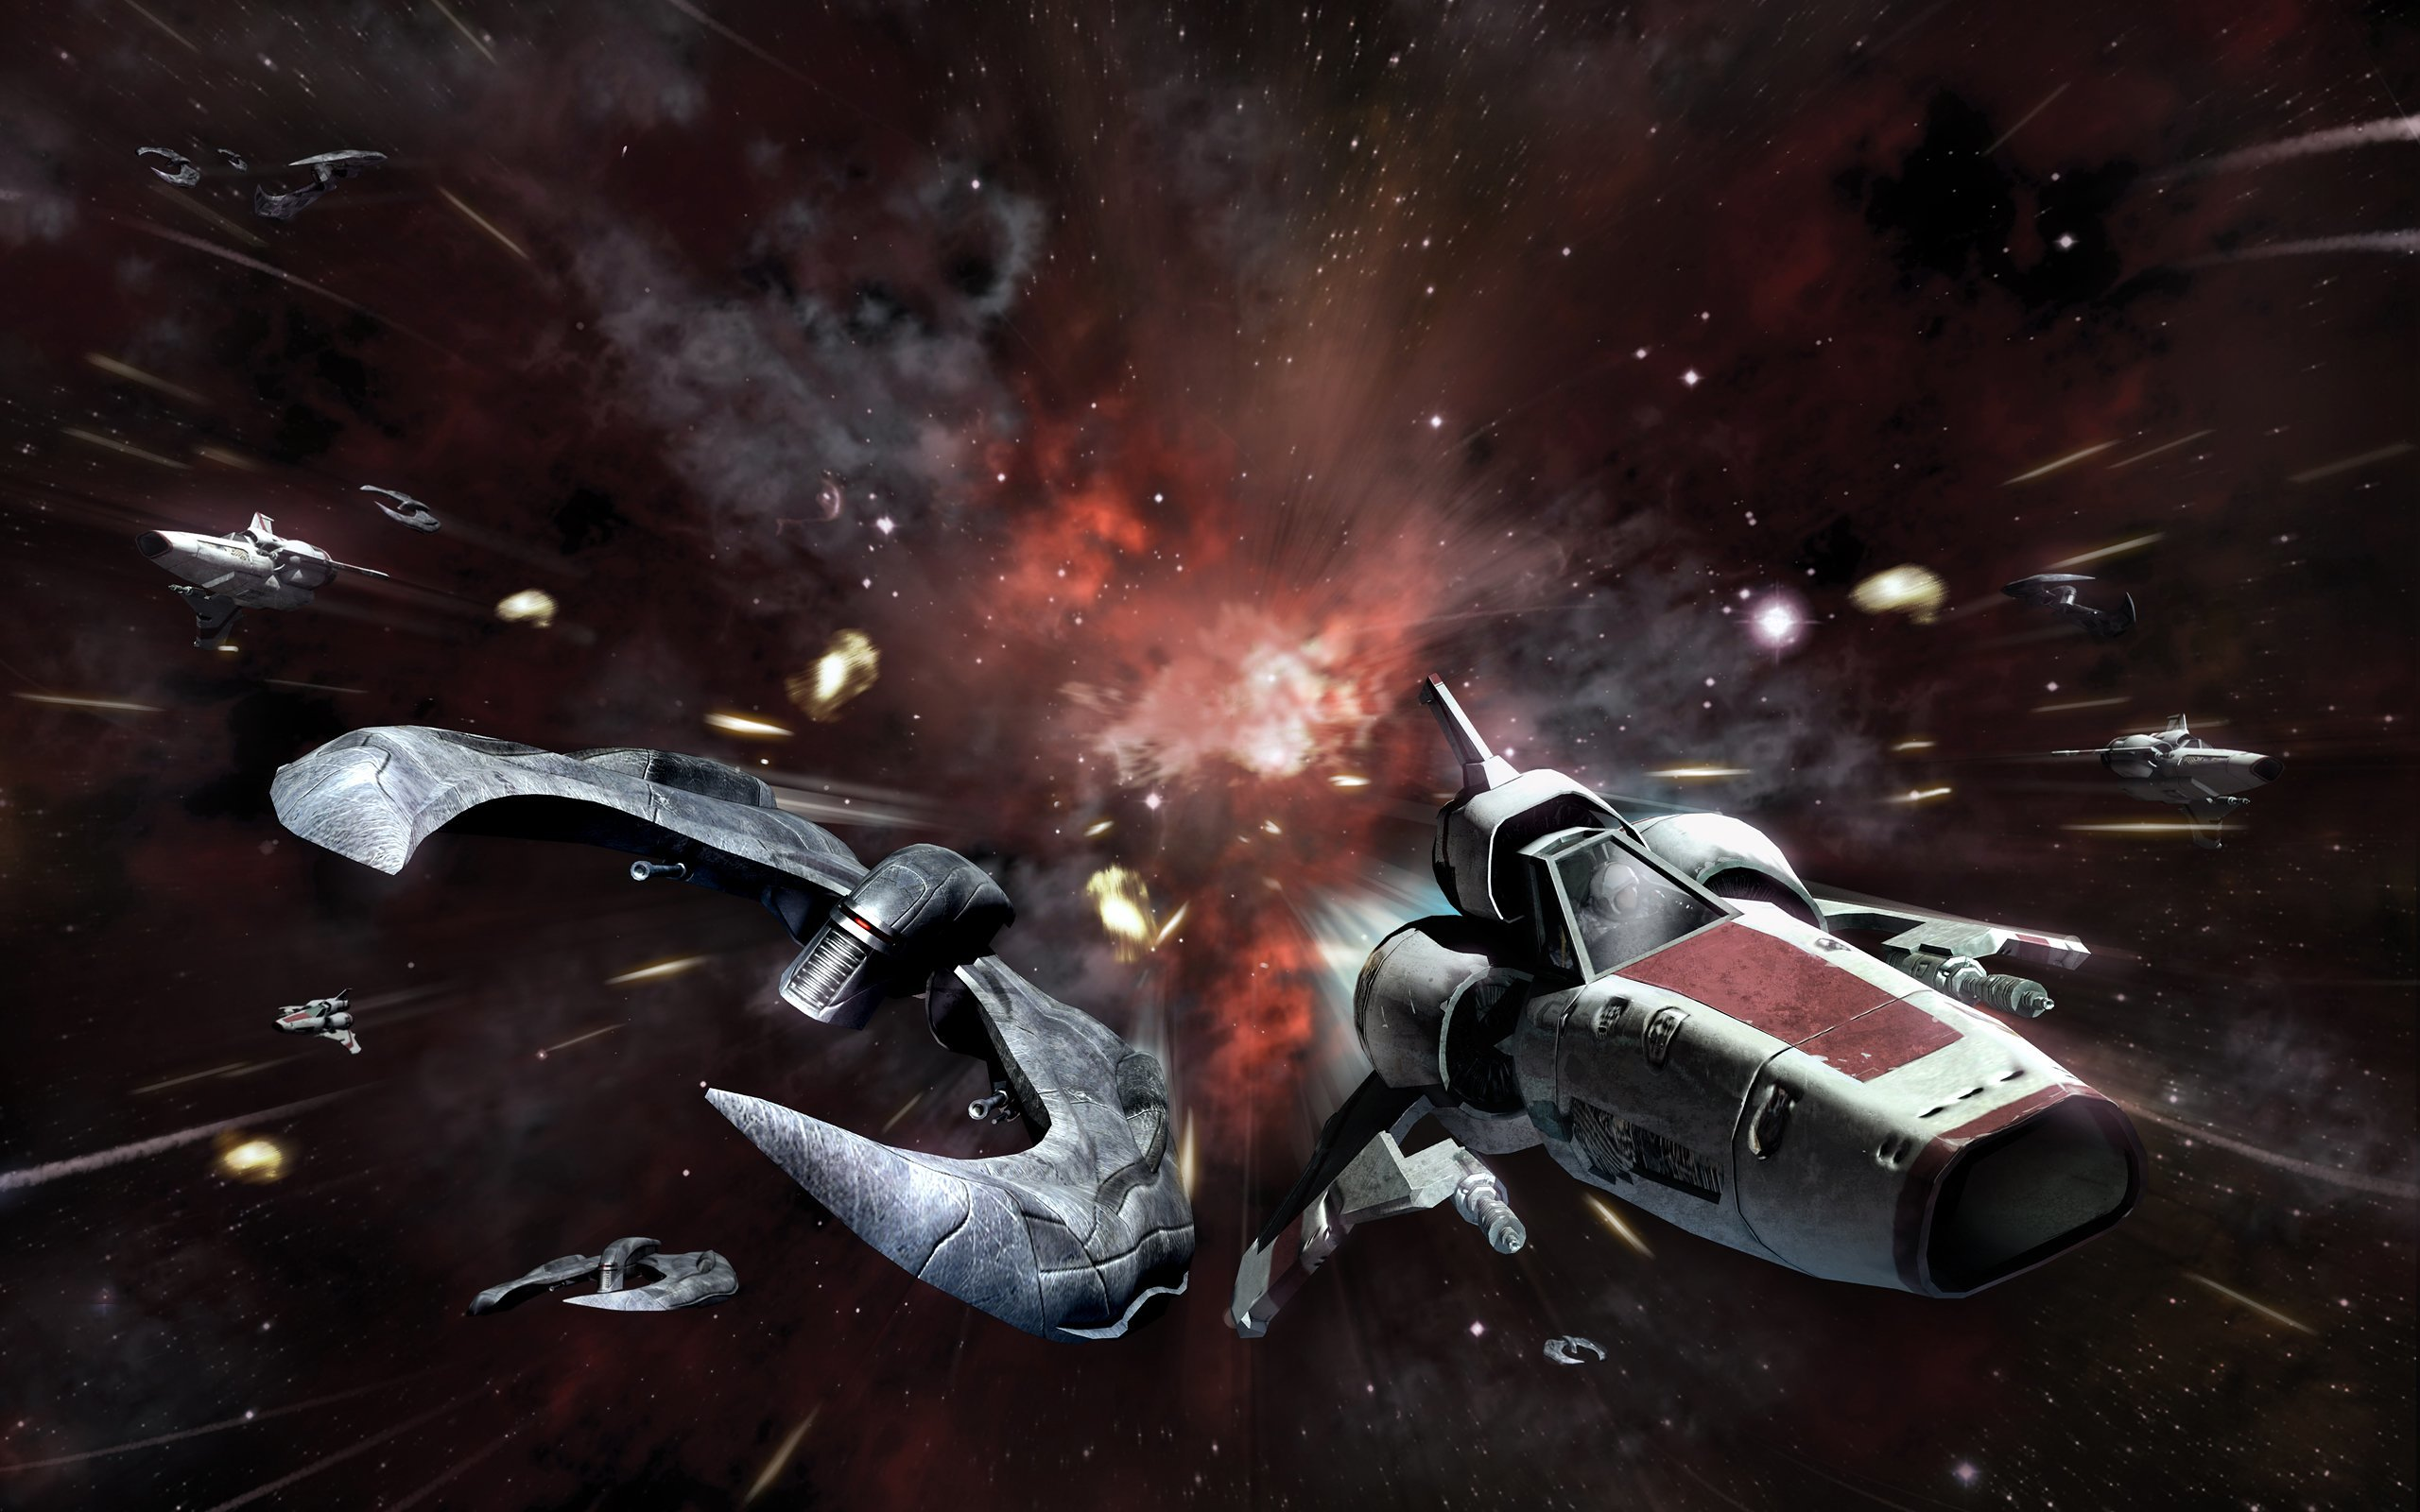 Stars battlestar galactica Viper HD Wallpaper